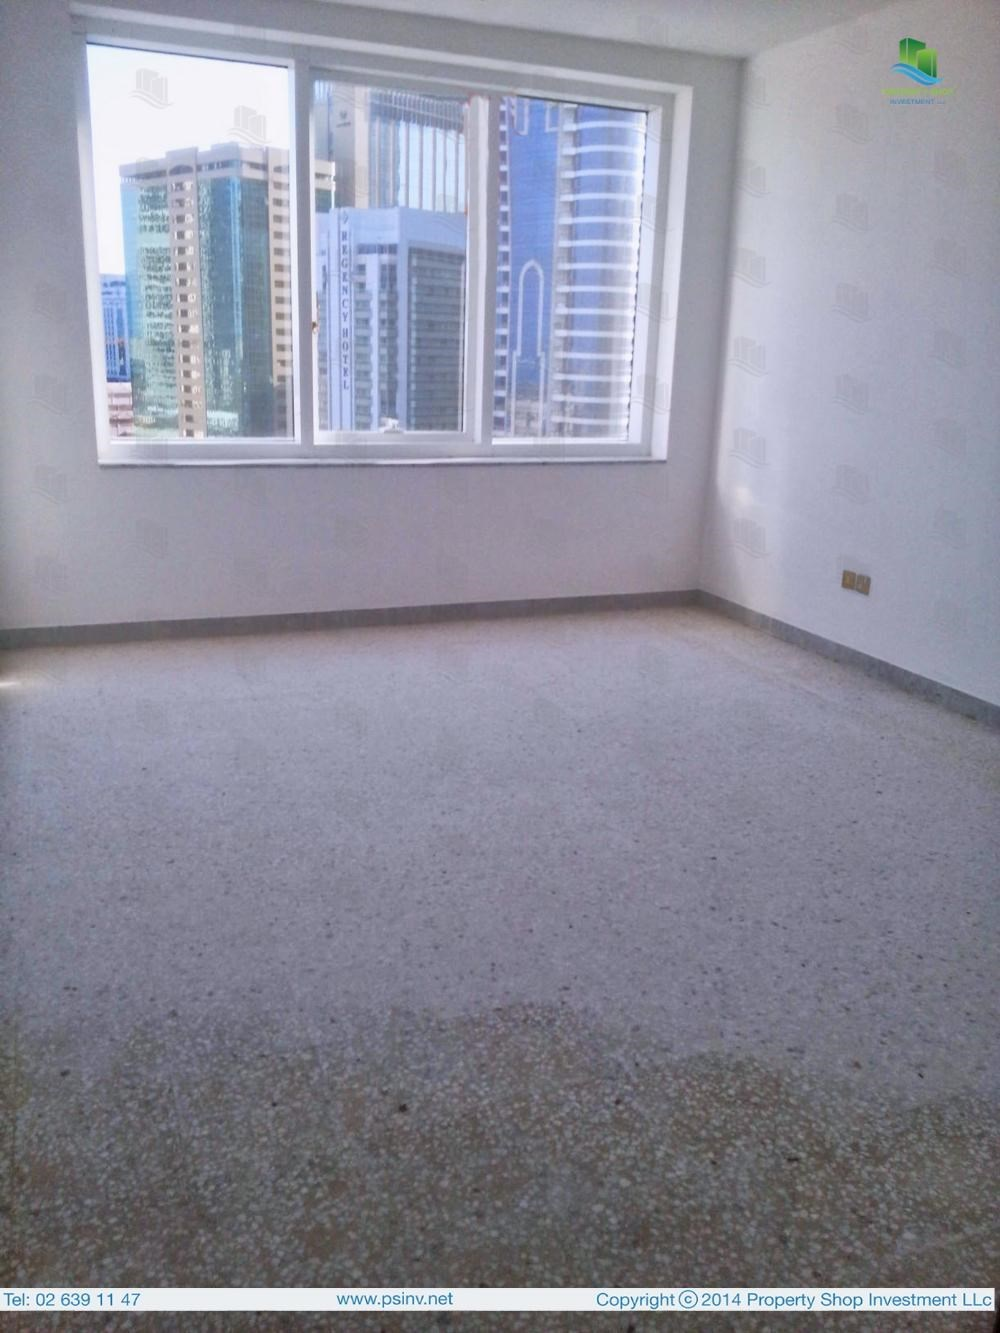 4 bedroom apartment for rent in alia tower khalifa 4 bedroom apartment for rent in asoke amazing properties